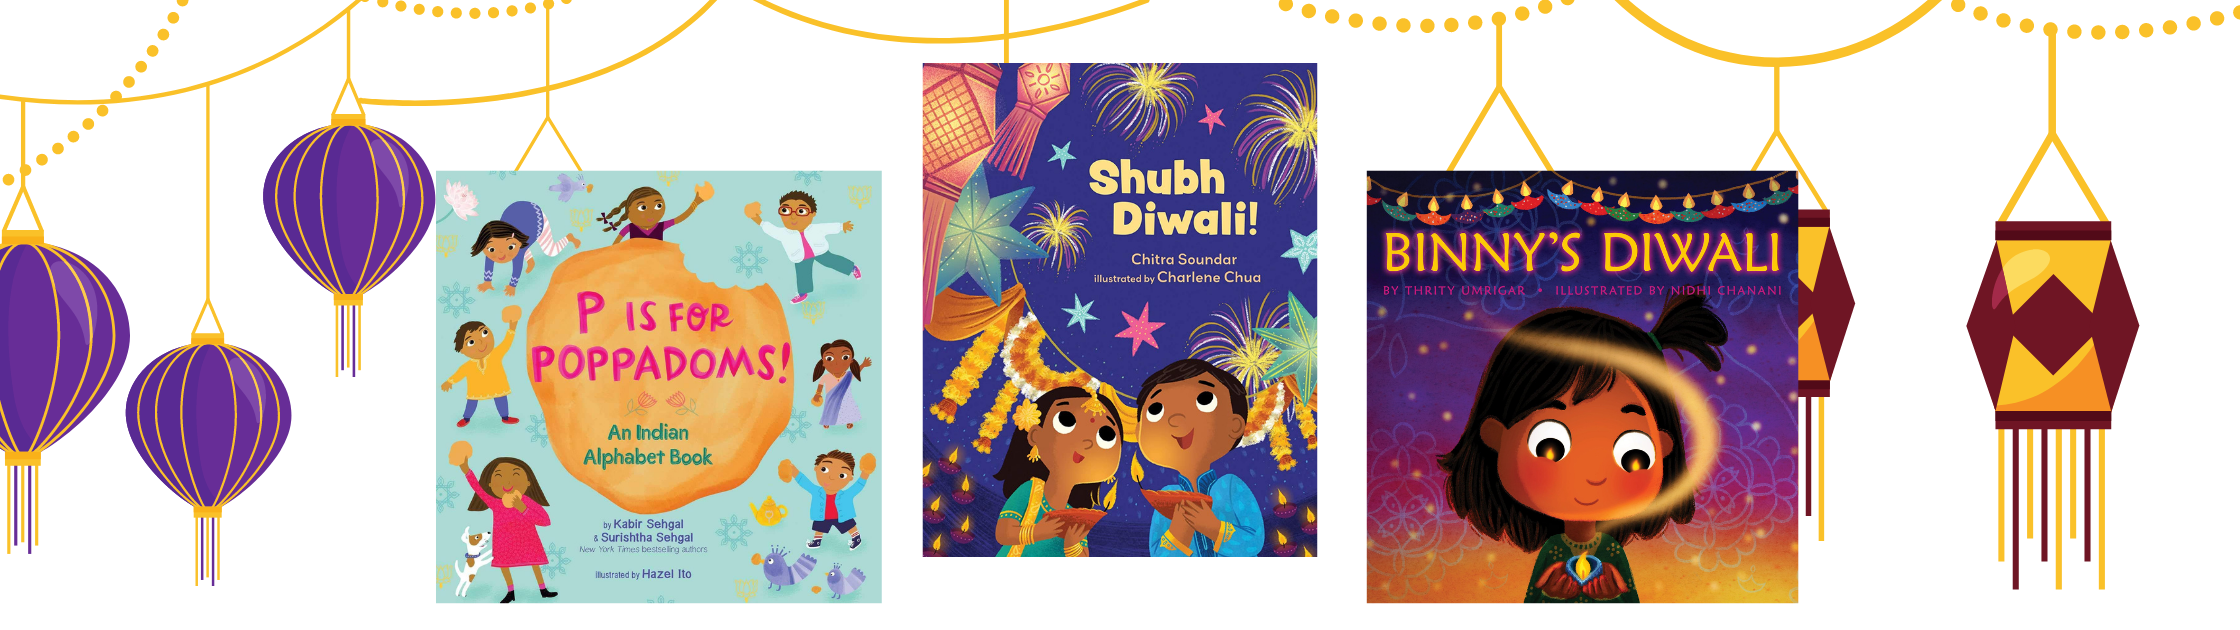 Diwali Book Covers